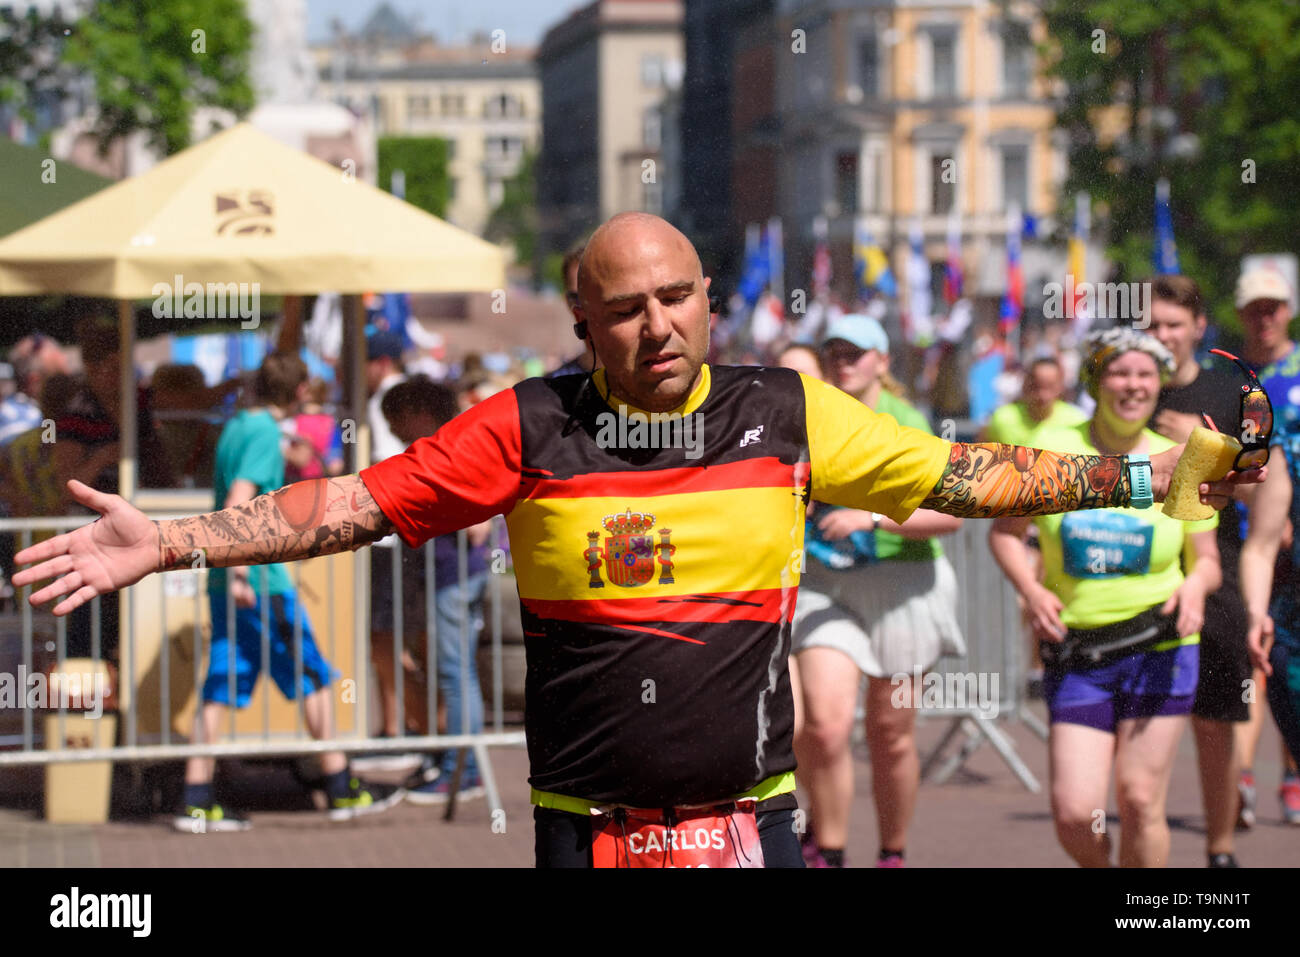 RIGA, Latvia. 19th May, 2019. Runner from Spain competing at TET RIGA MARATHON 2019. The only IAAF Gold Label marathon in Northern Europe. Credit: Gints Ivuskans/Alamy Live News - Stock Image